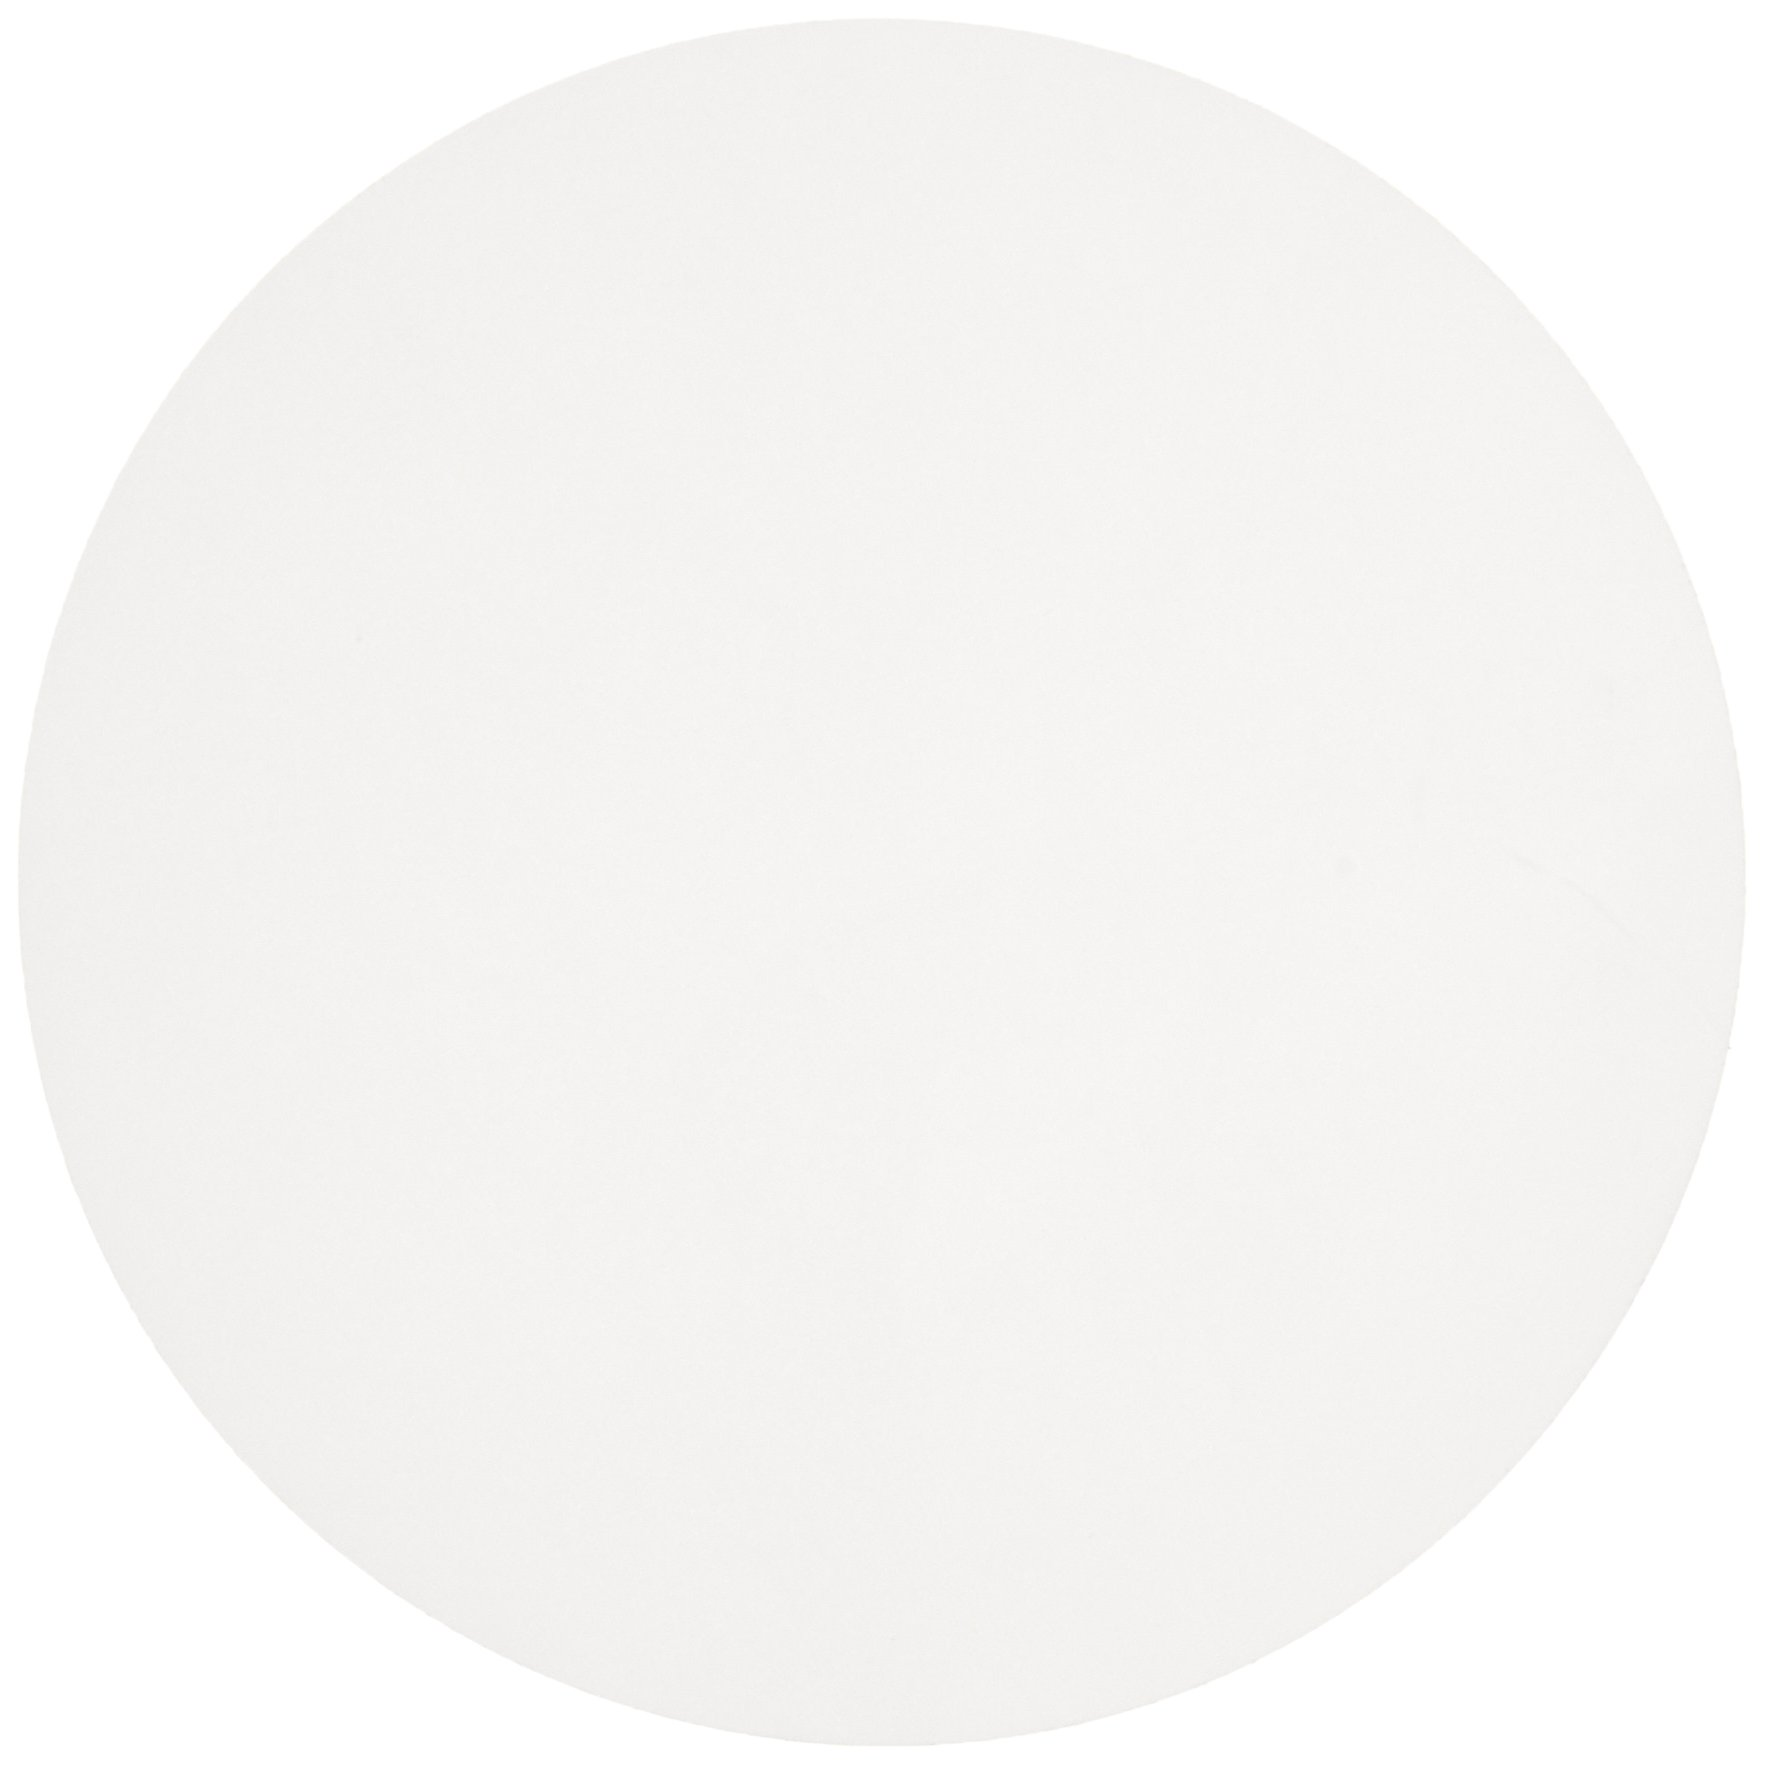 GE Whatman 1002-147 Cellulose Qualitative Filter Paper, Grade 2, Circle, 8µm Pore Size, 150mm Diameter (Pack of 100) by Whatman